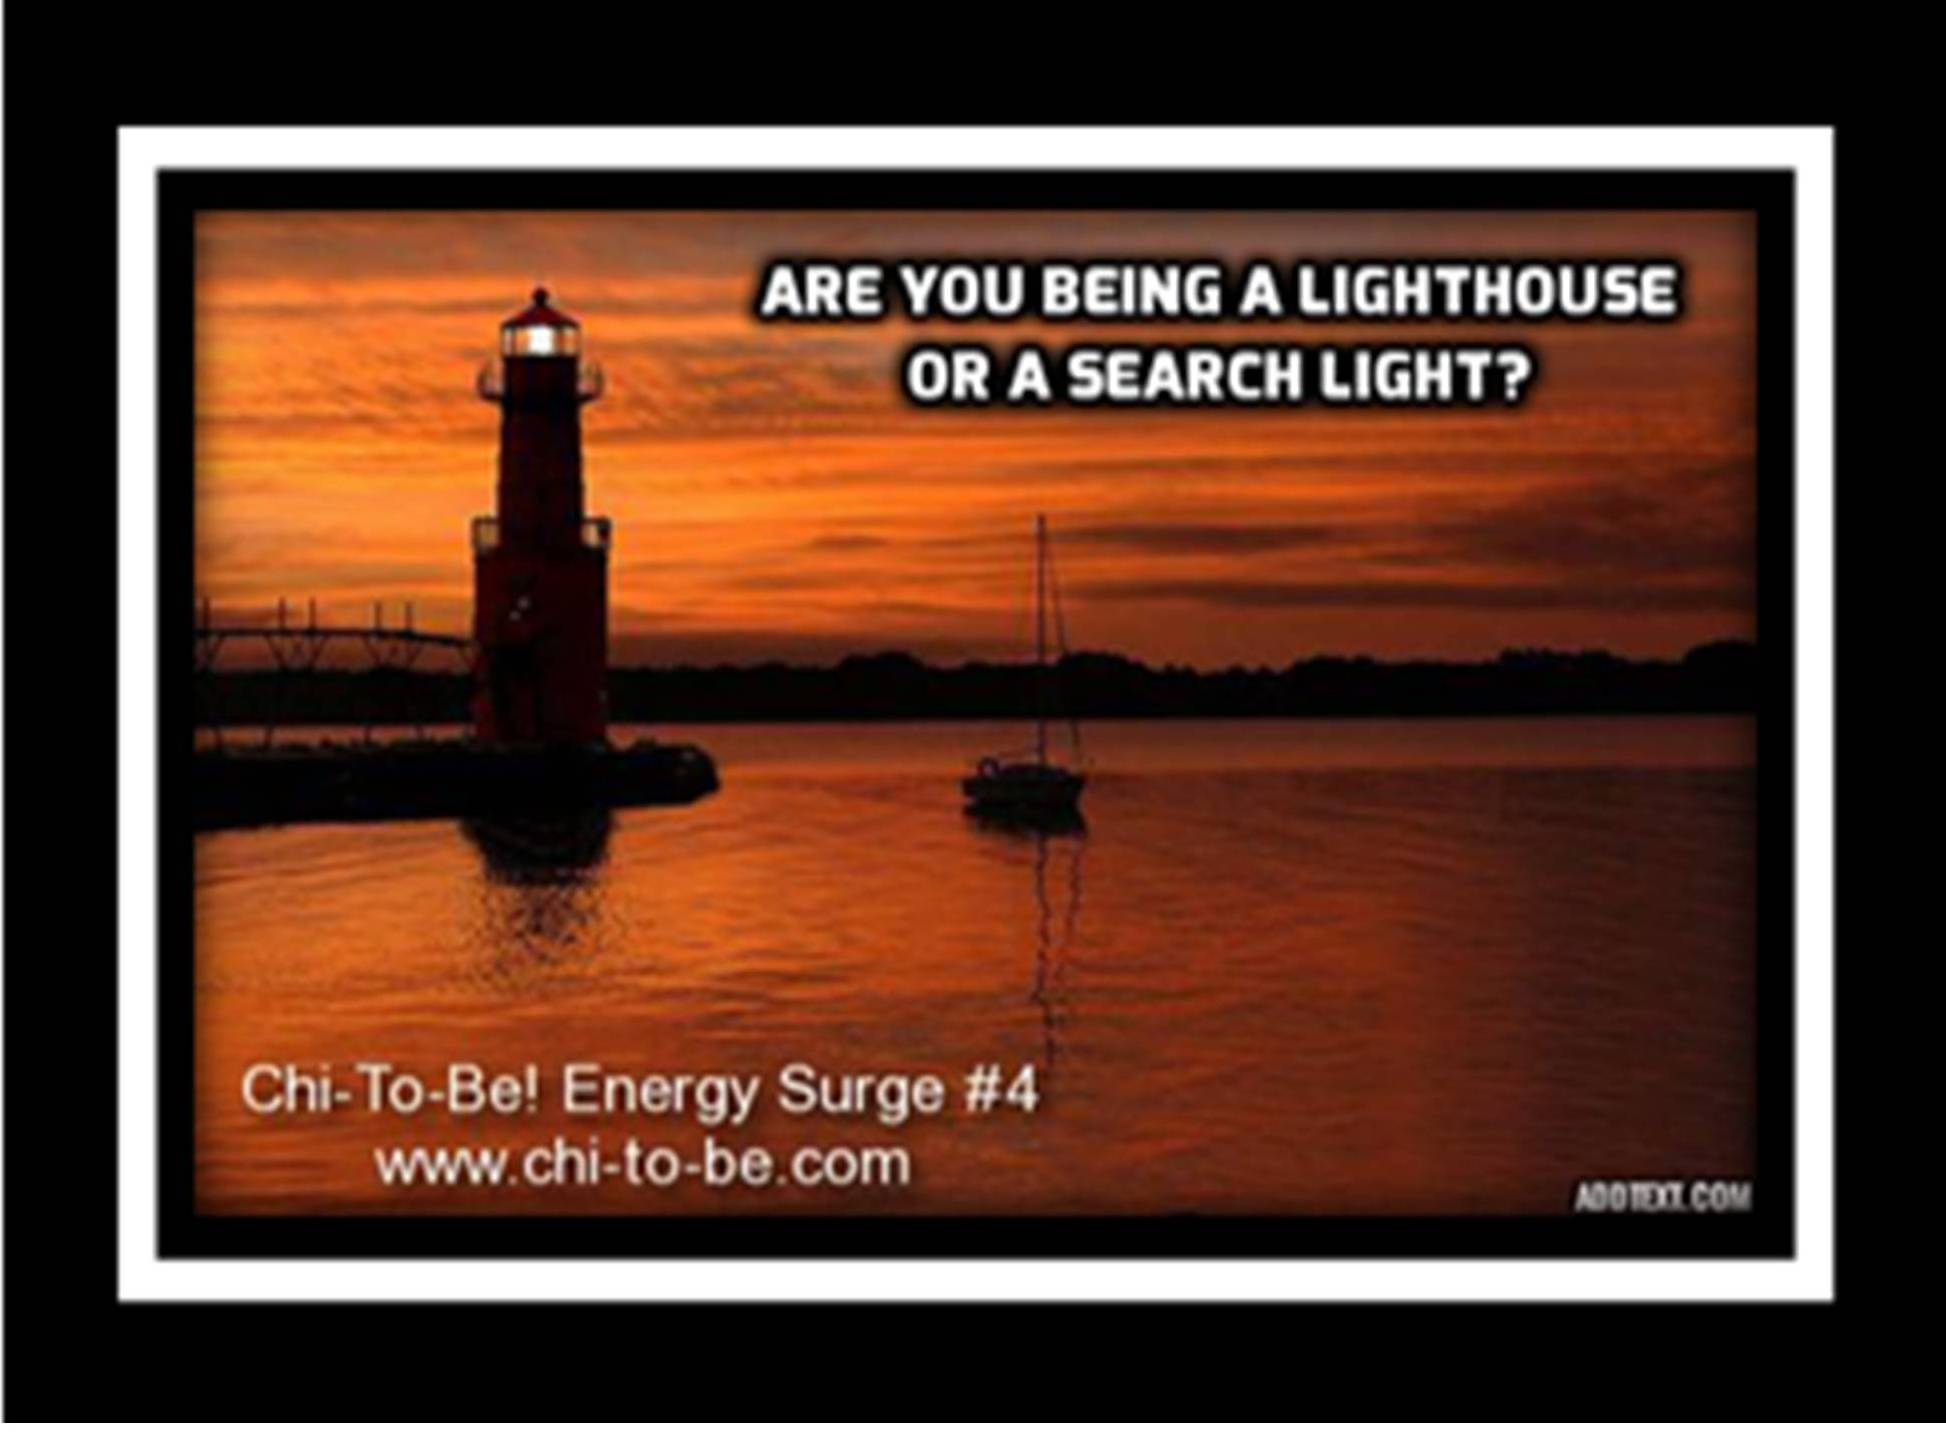 Search Light or Lighthouse